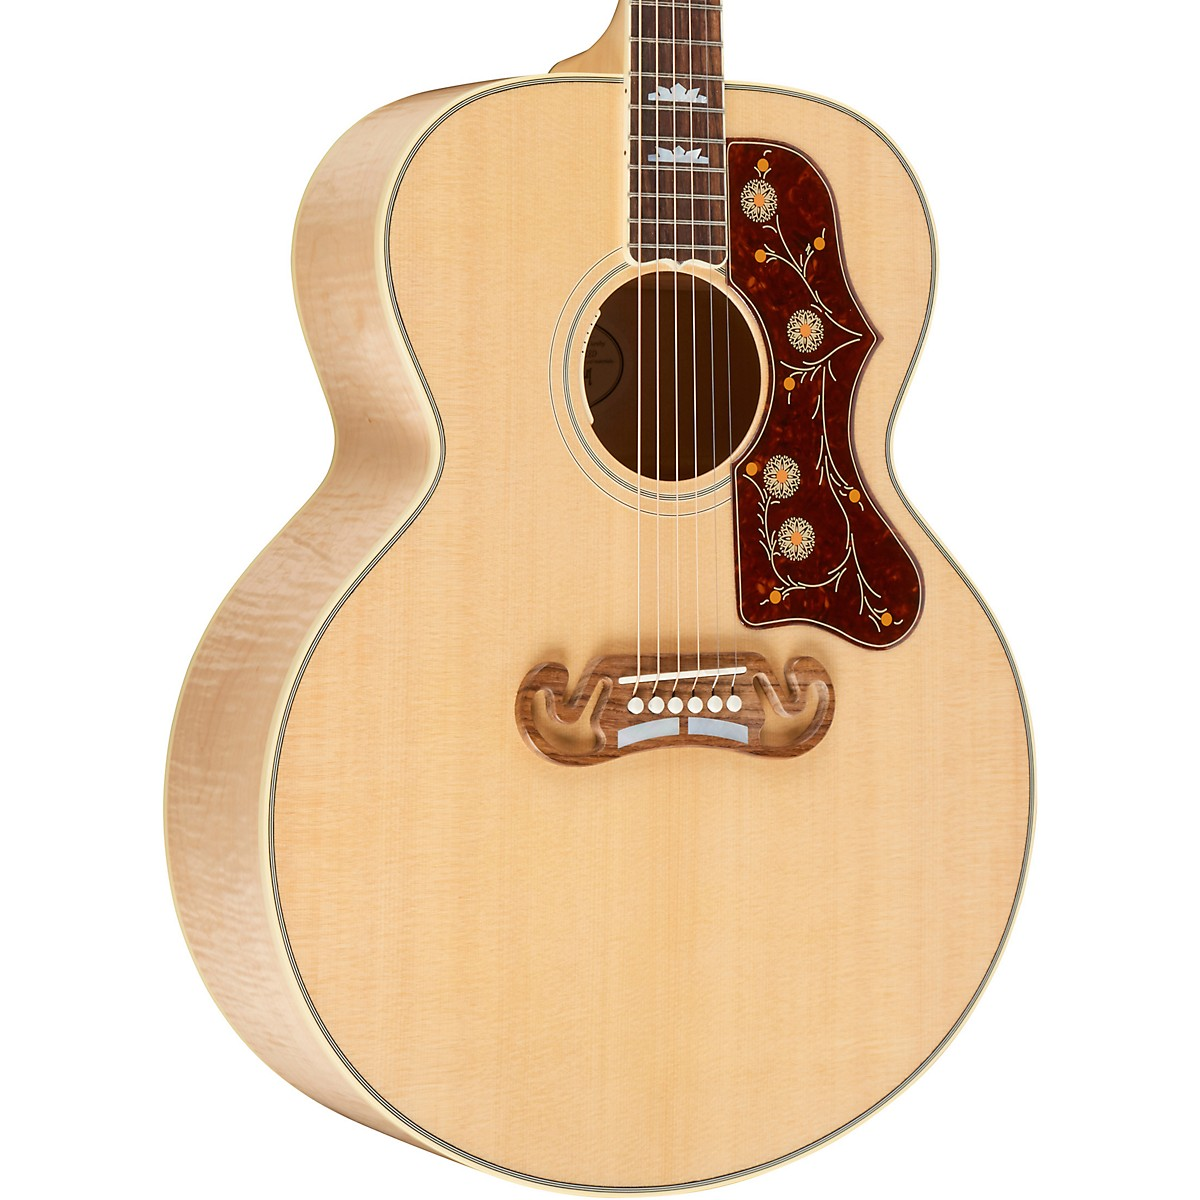 Gibson SJ-200 Standard Acoustic-Electric Guitar